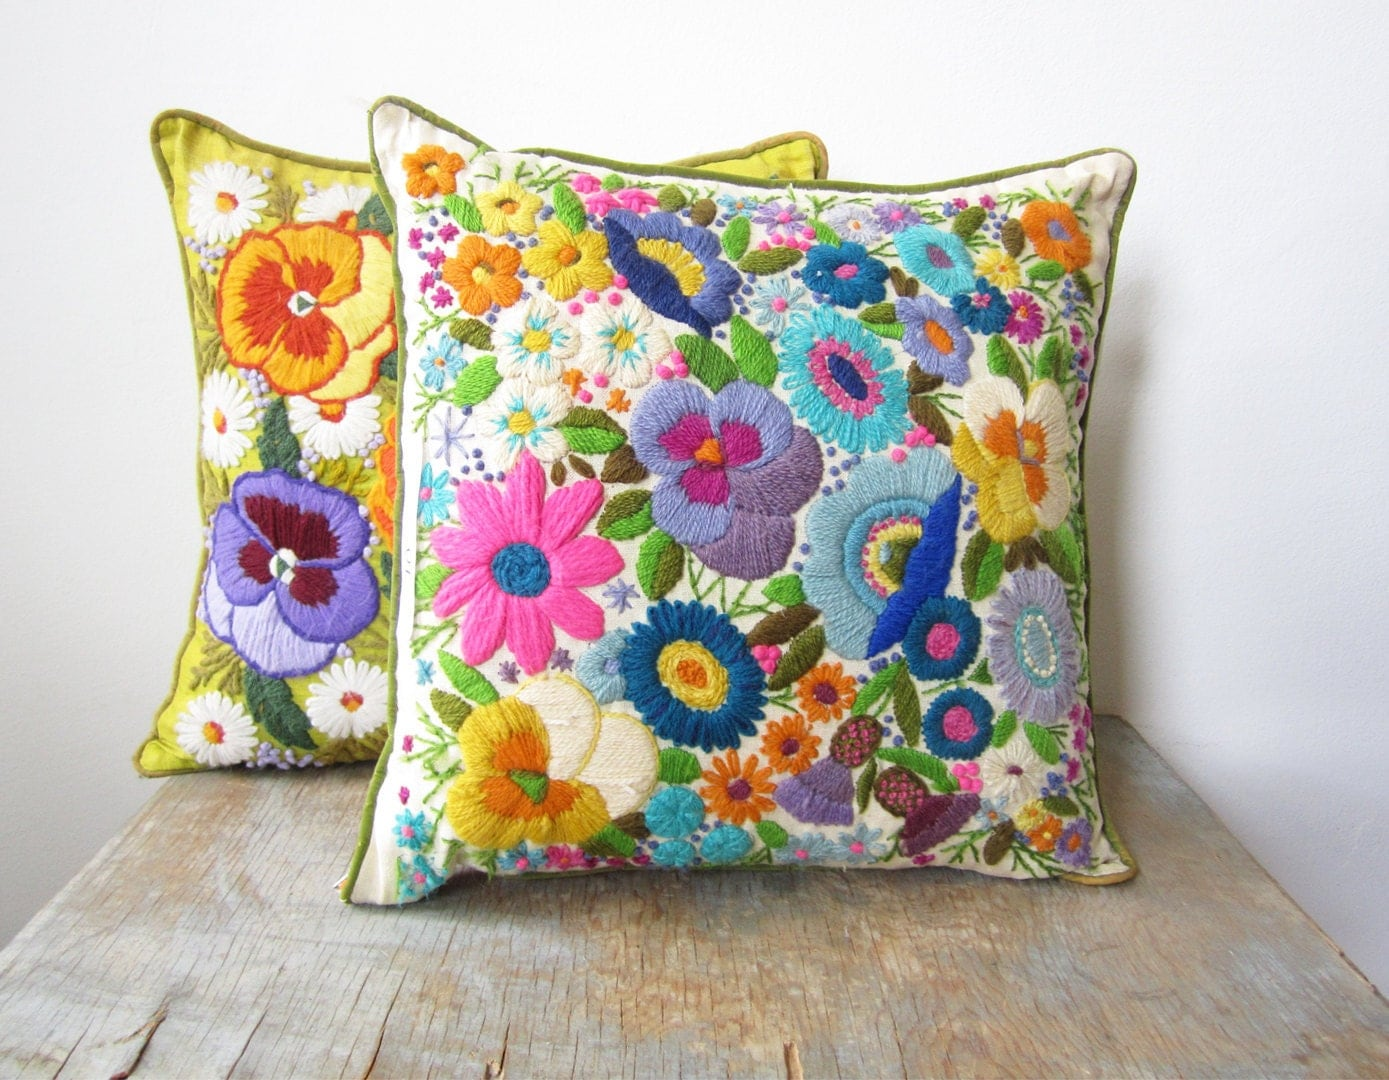 Sale vintage crewel embroidery pillow bright floral